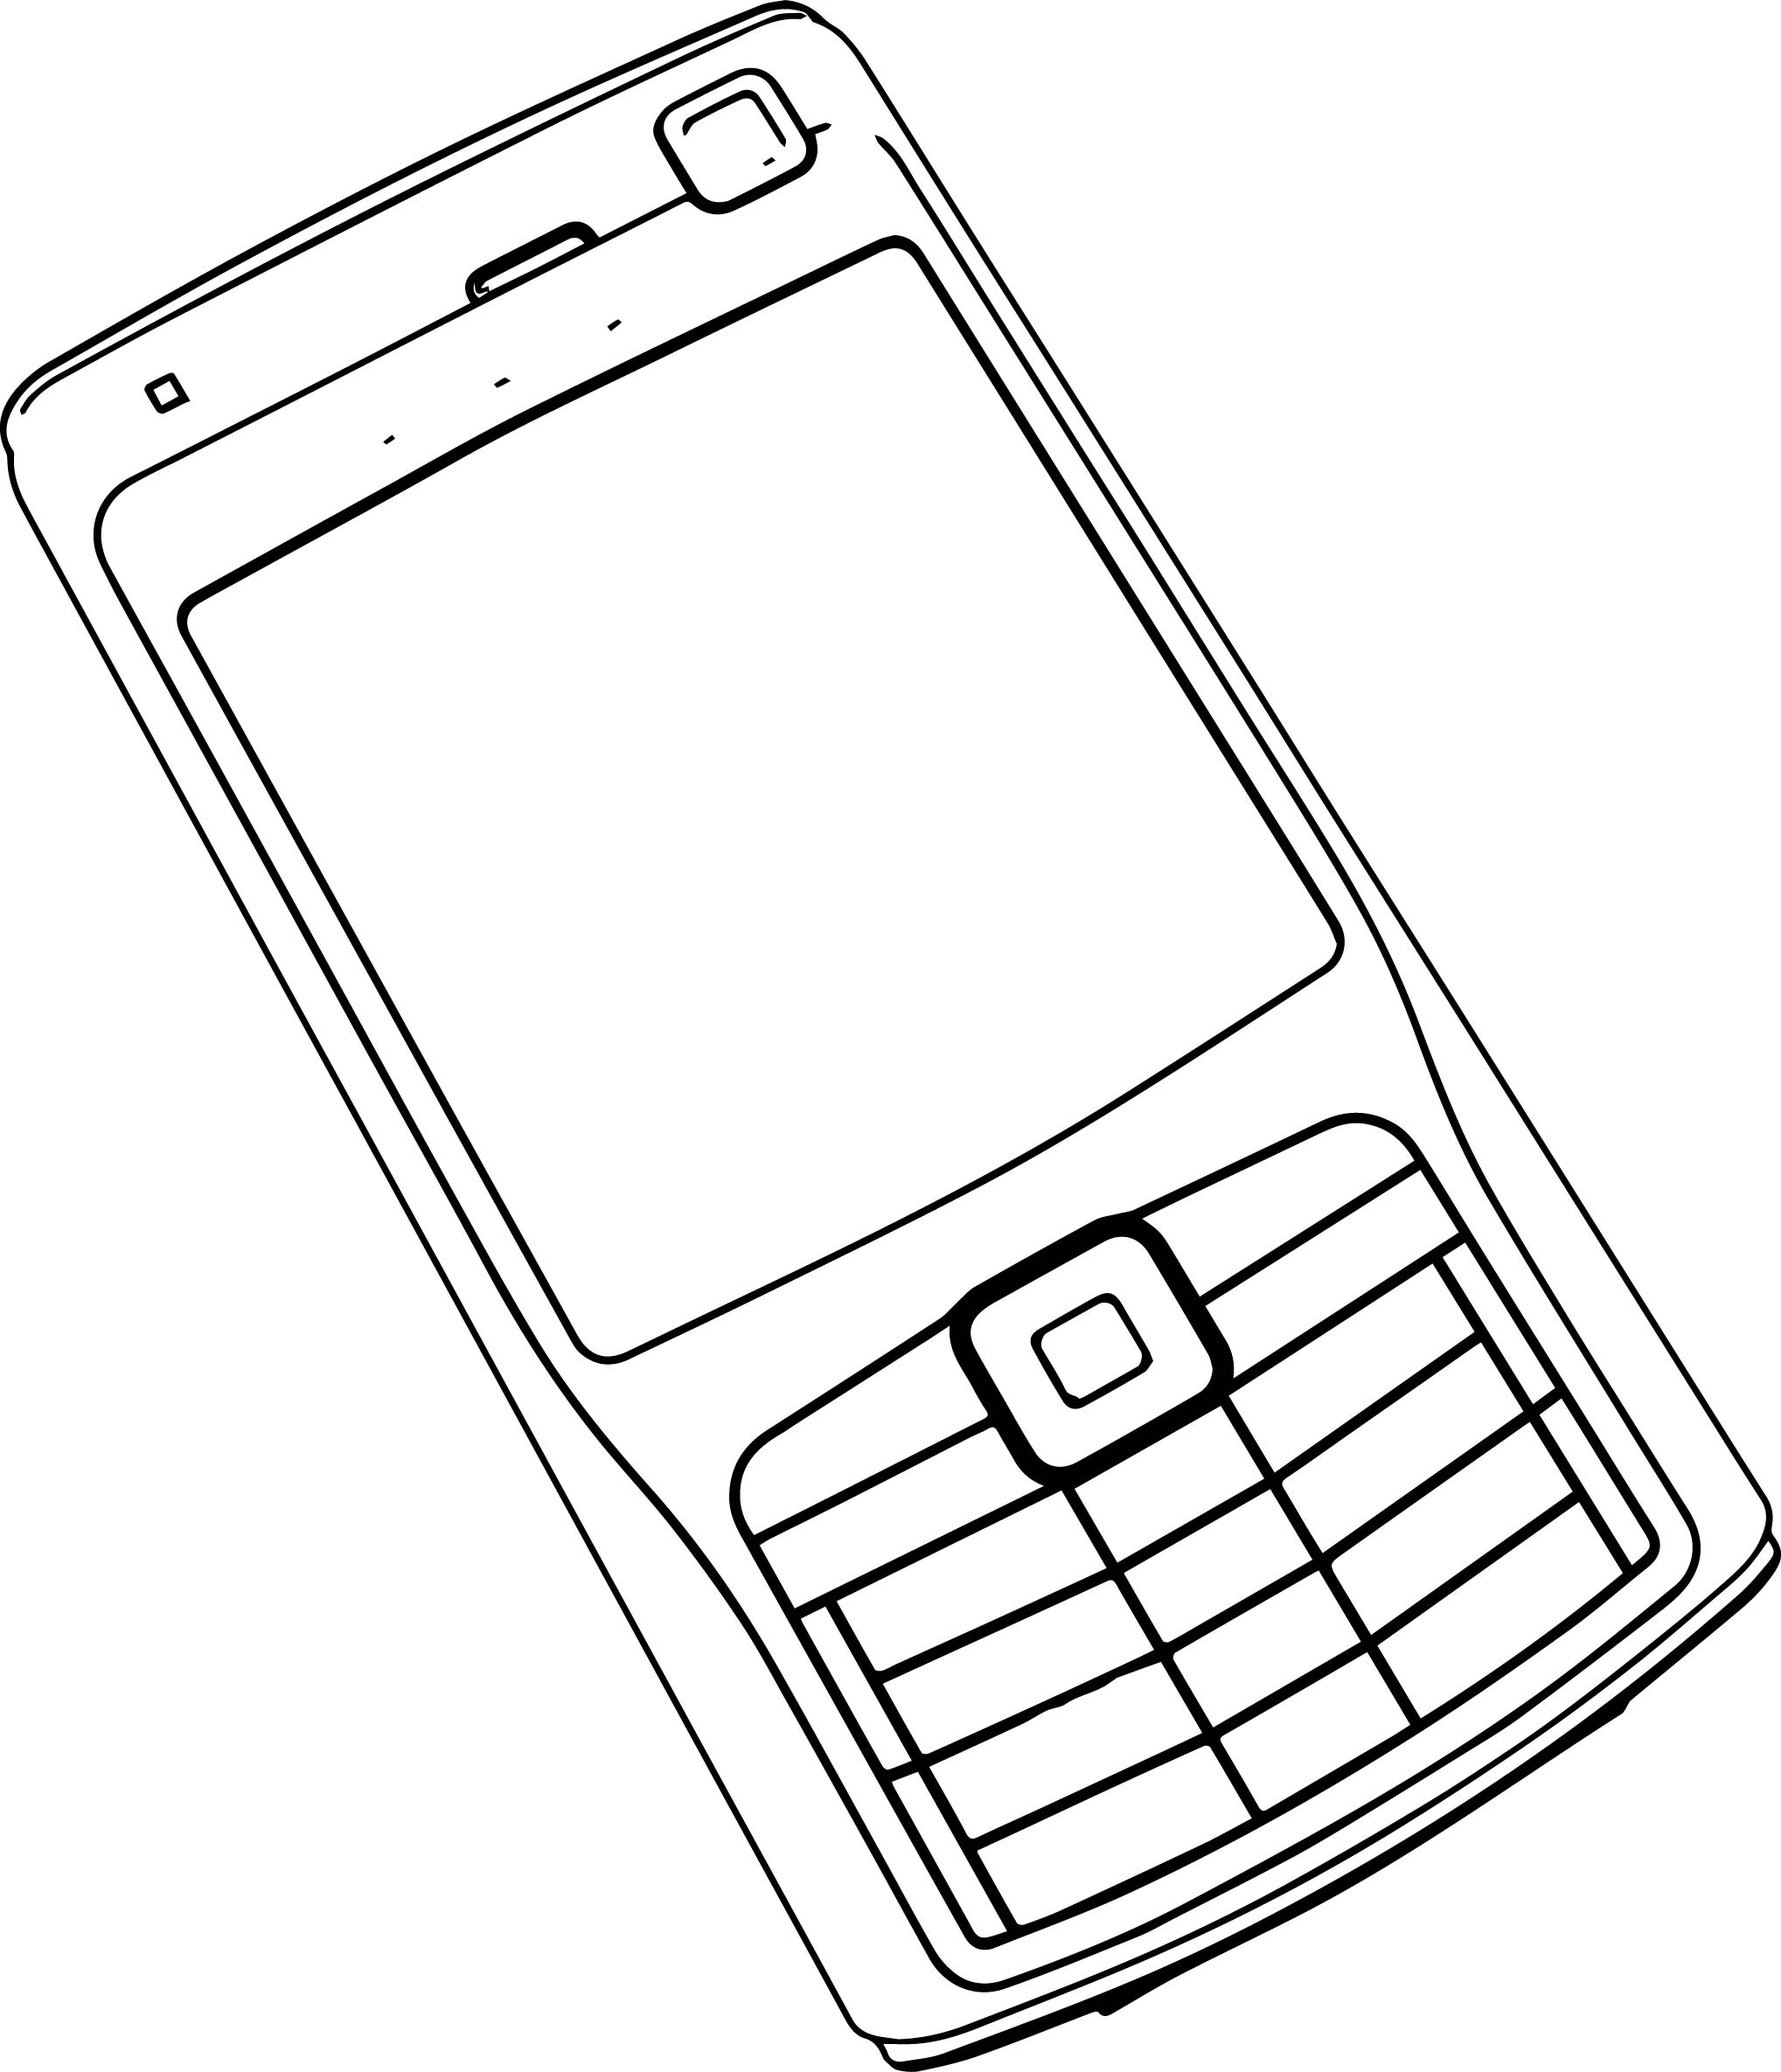 Cell Phone Clip Art Outline Sketch Coloring Page Sketch